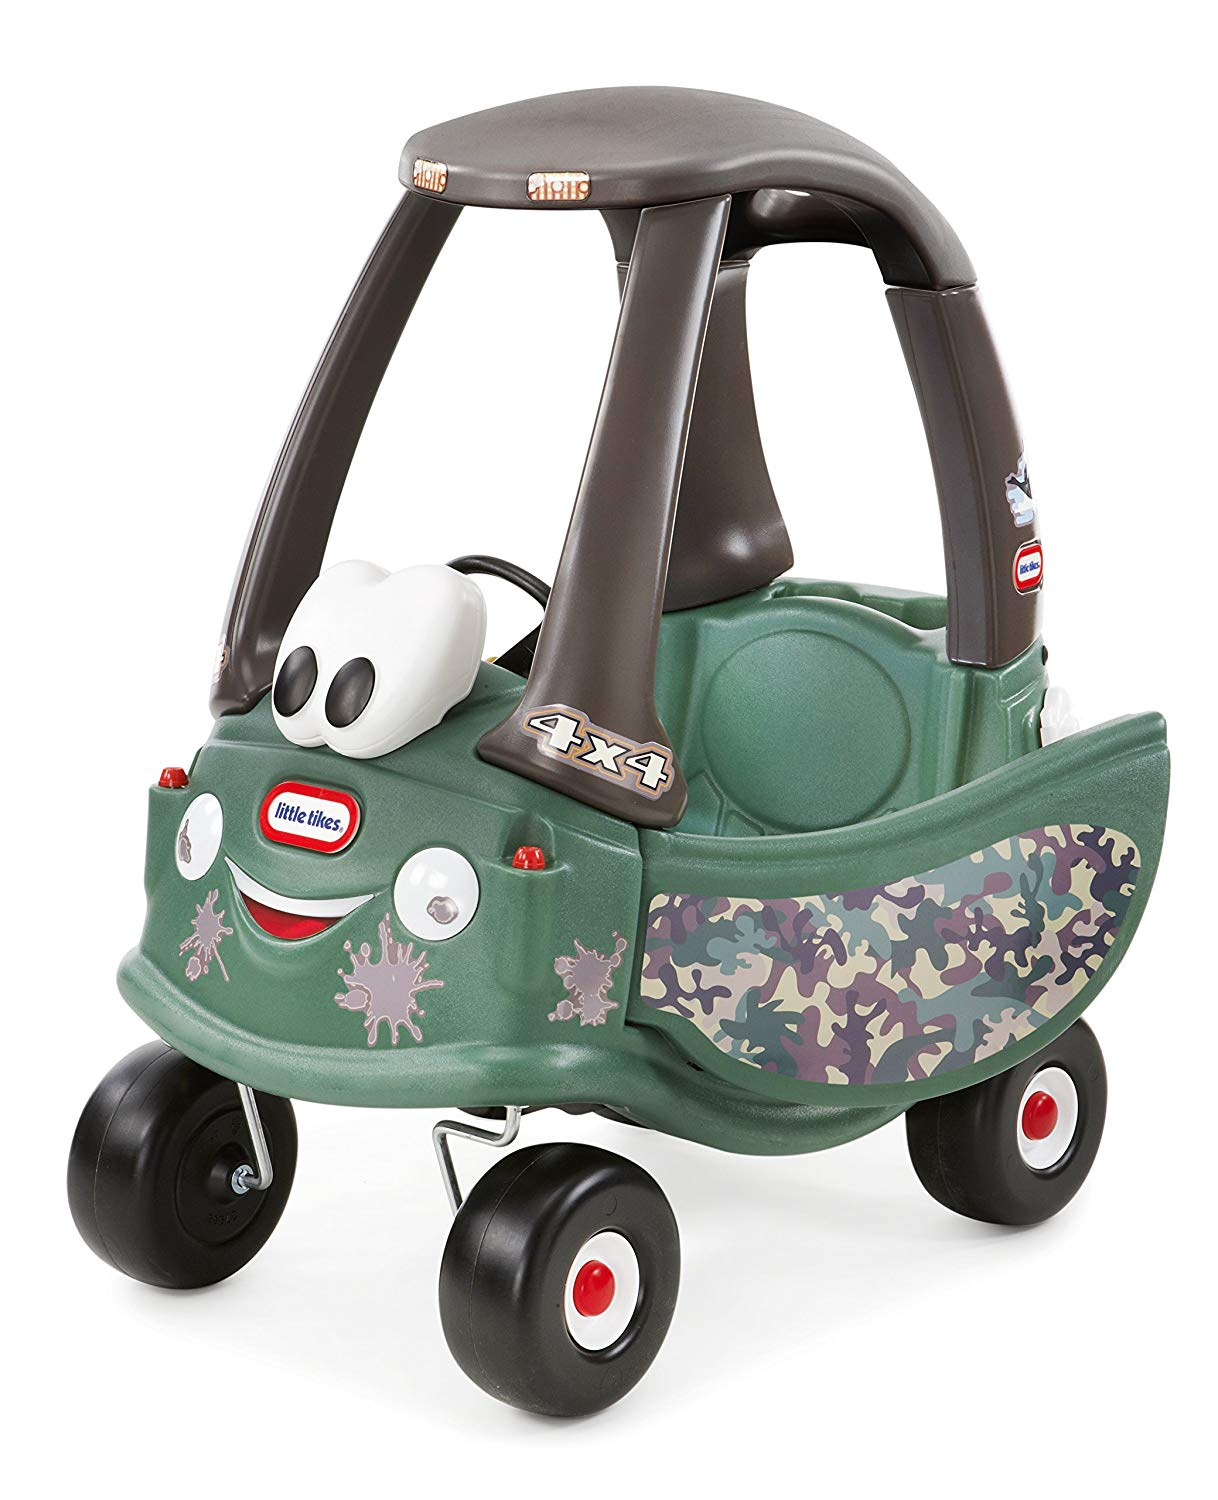 7. Little Tikes Cozy Coupe Off-Roader